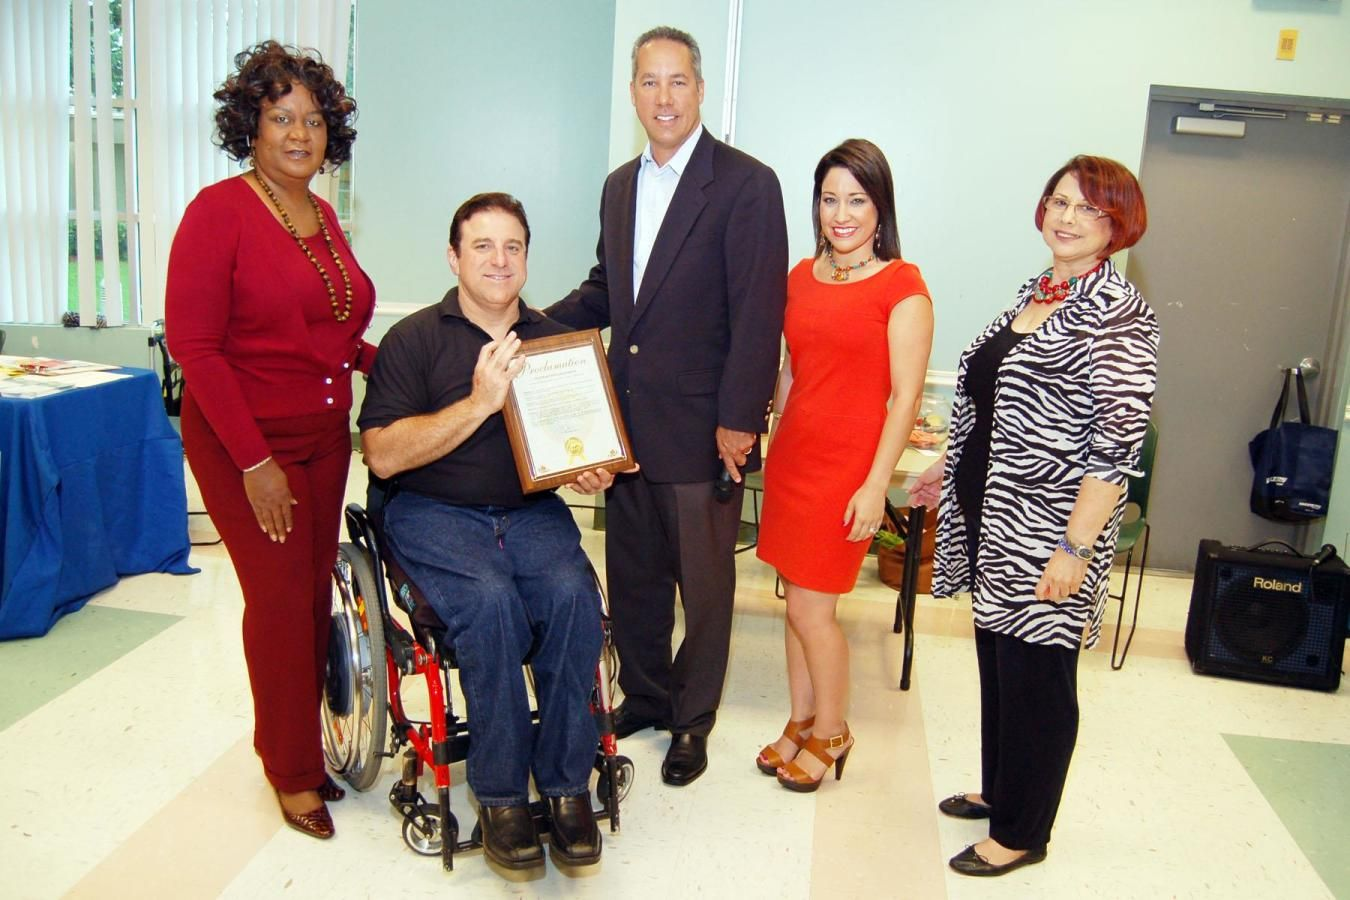 Mayor George Vallejo presents NMB Chamber President, Evan Piper, with Proclamation!